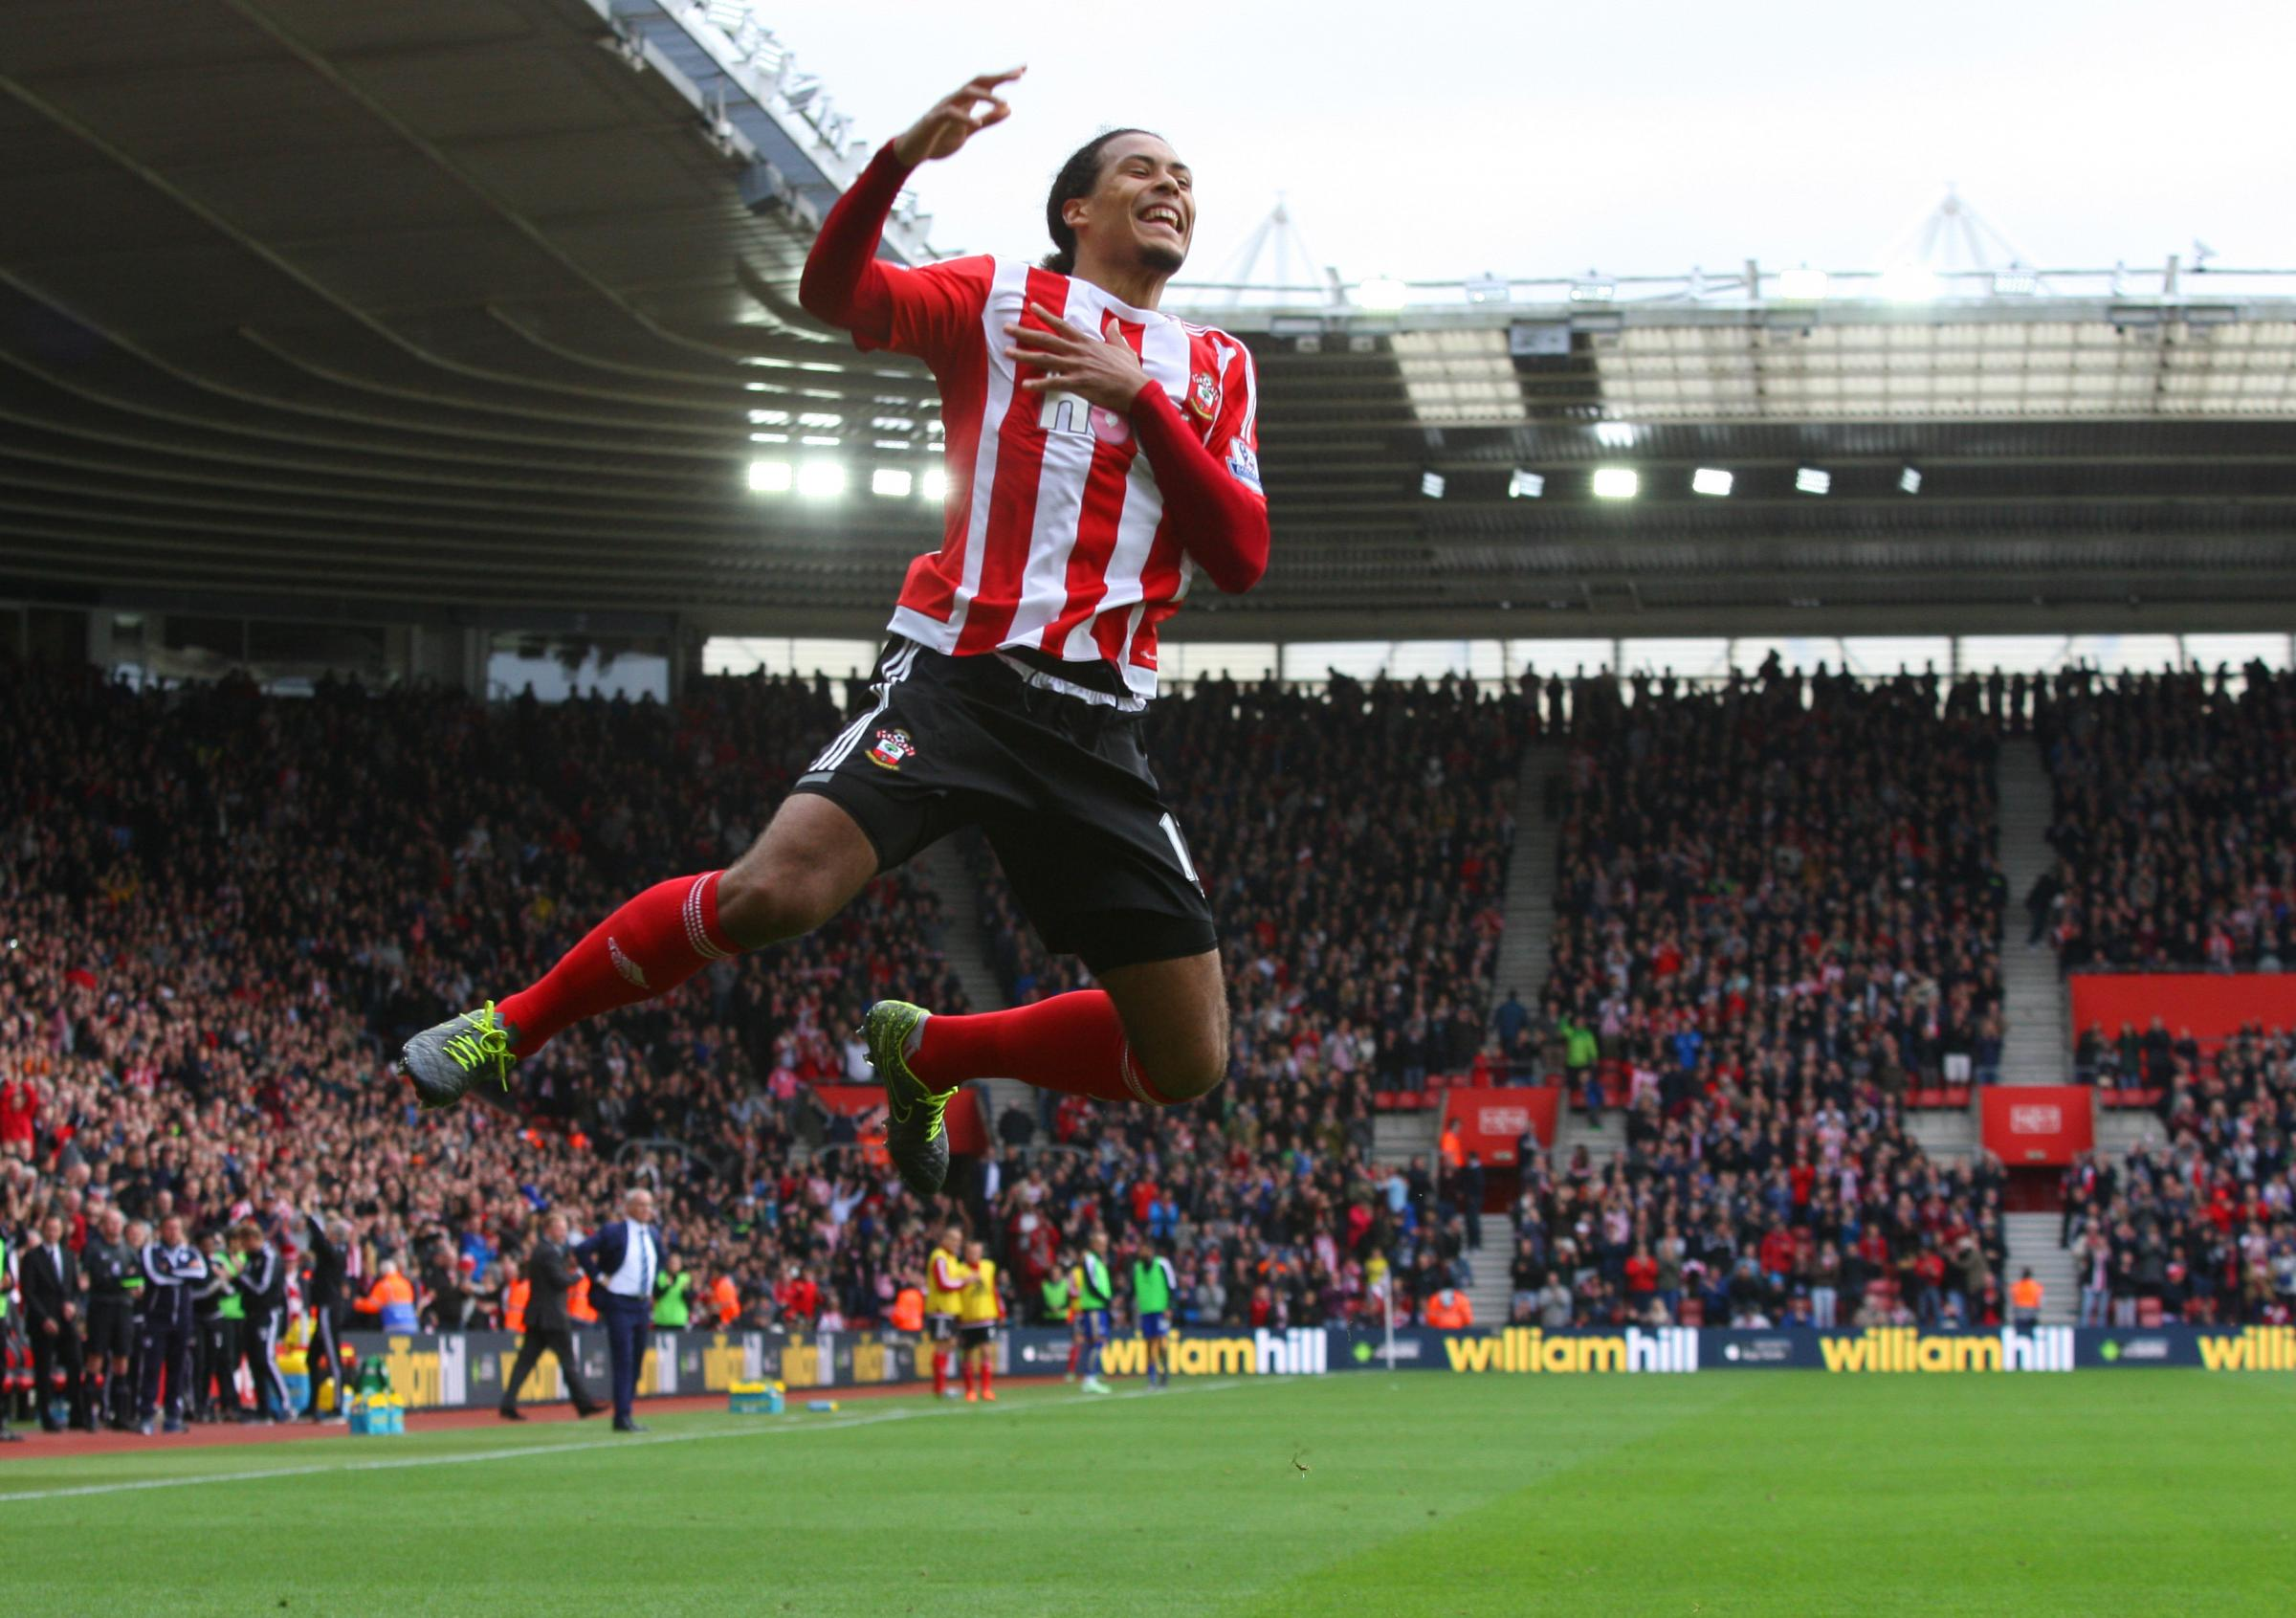 Southampton 2-2 Liecester City - in pictures